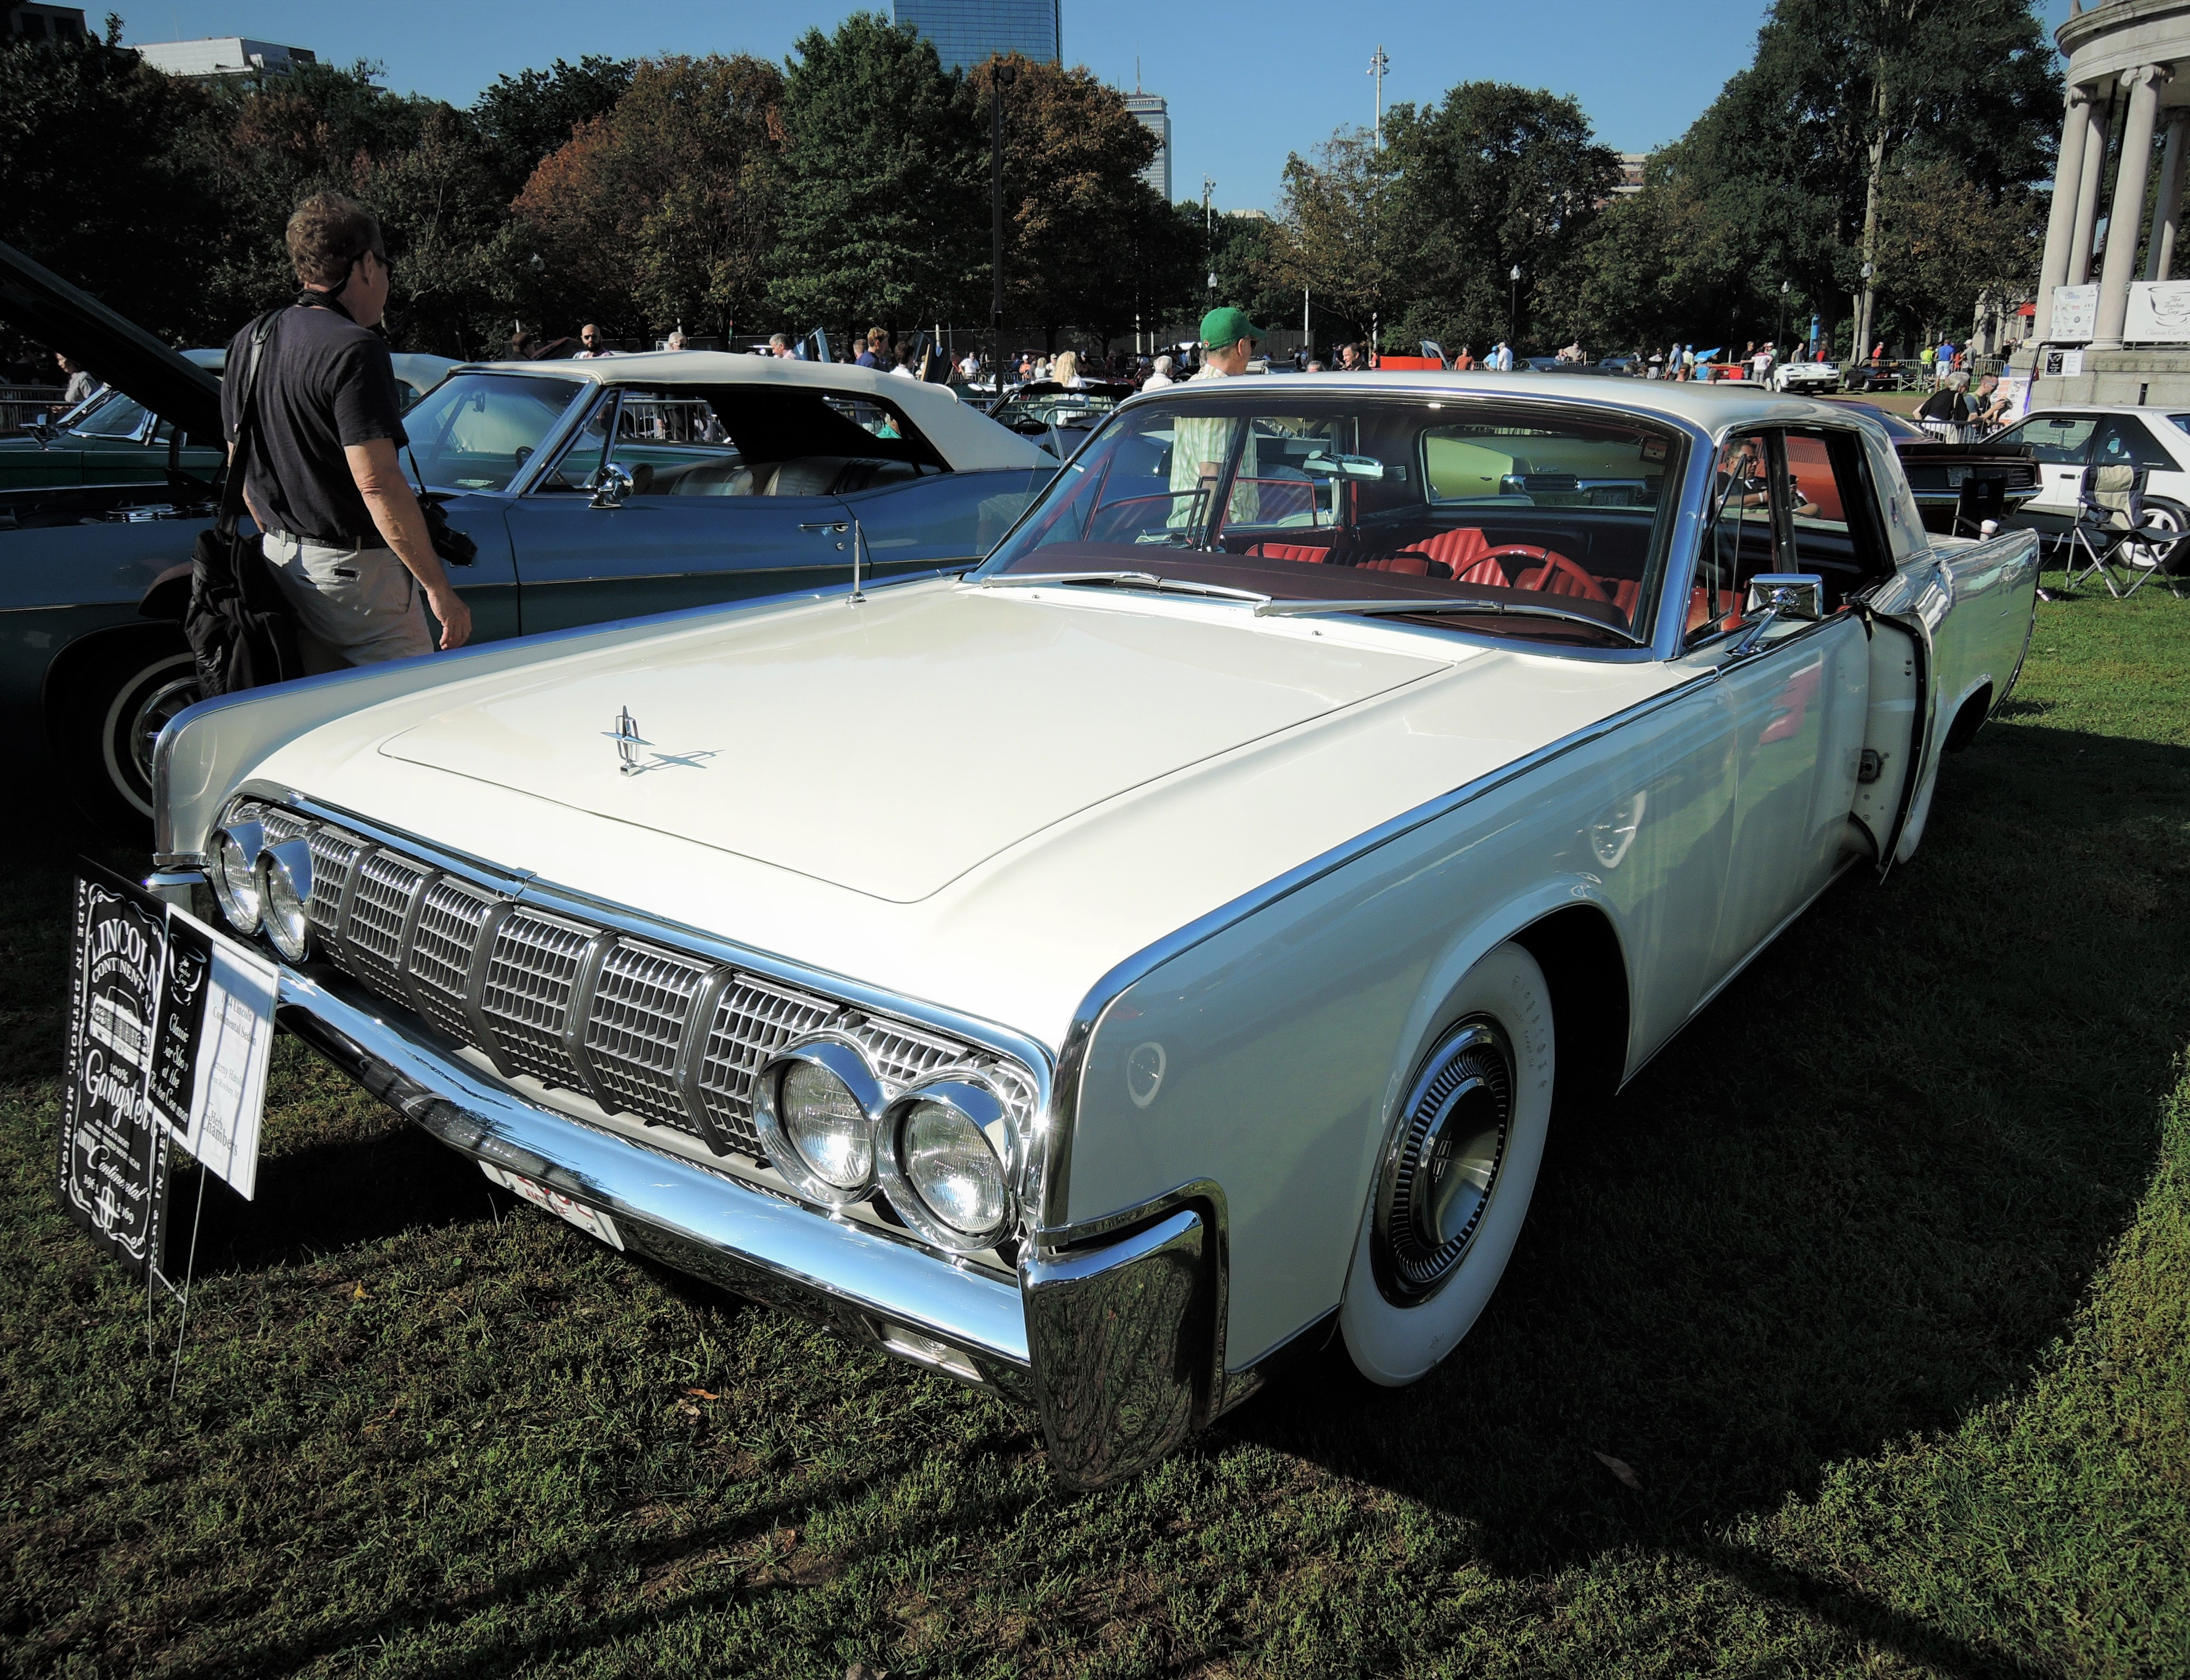 white 1964 Lincoln Continental Sedan - The Boston Cup 2017